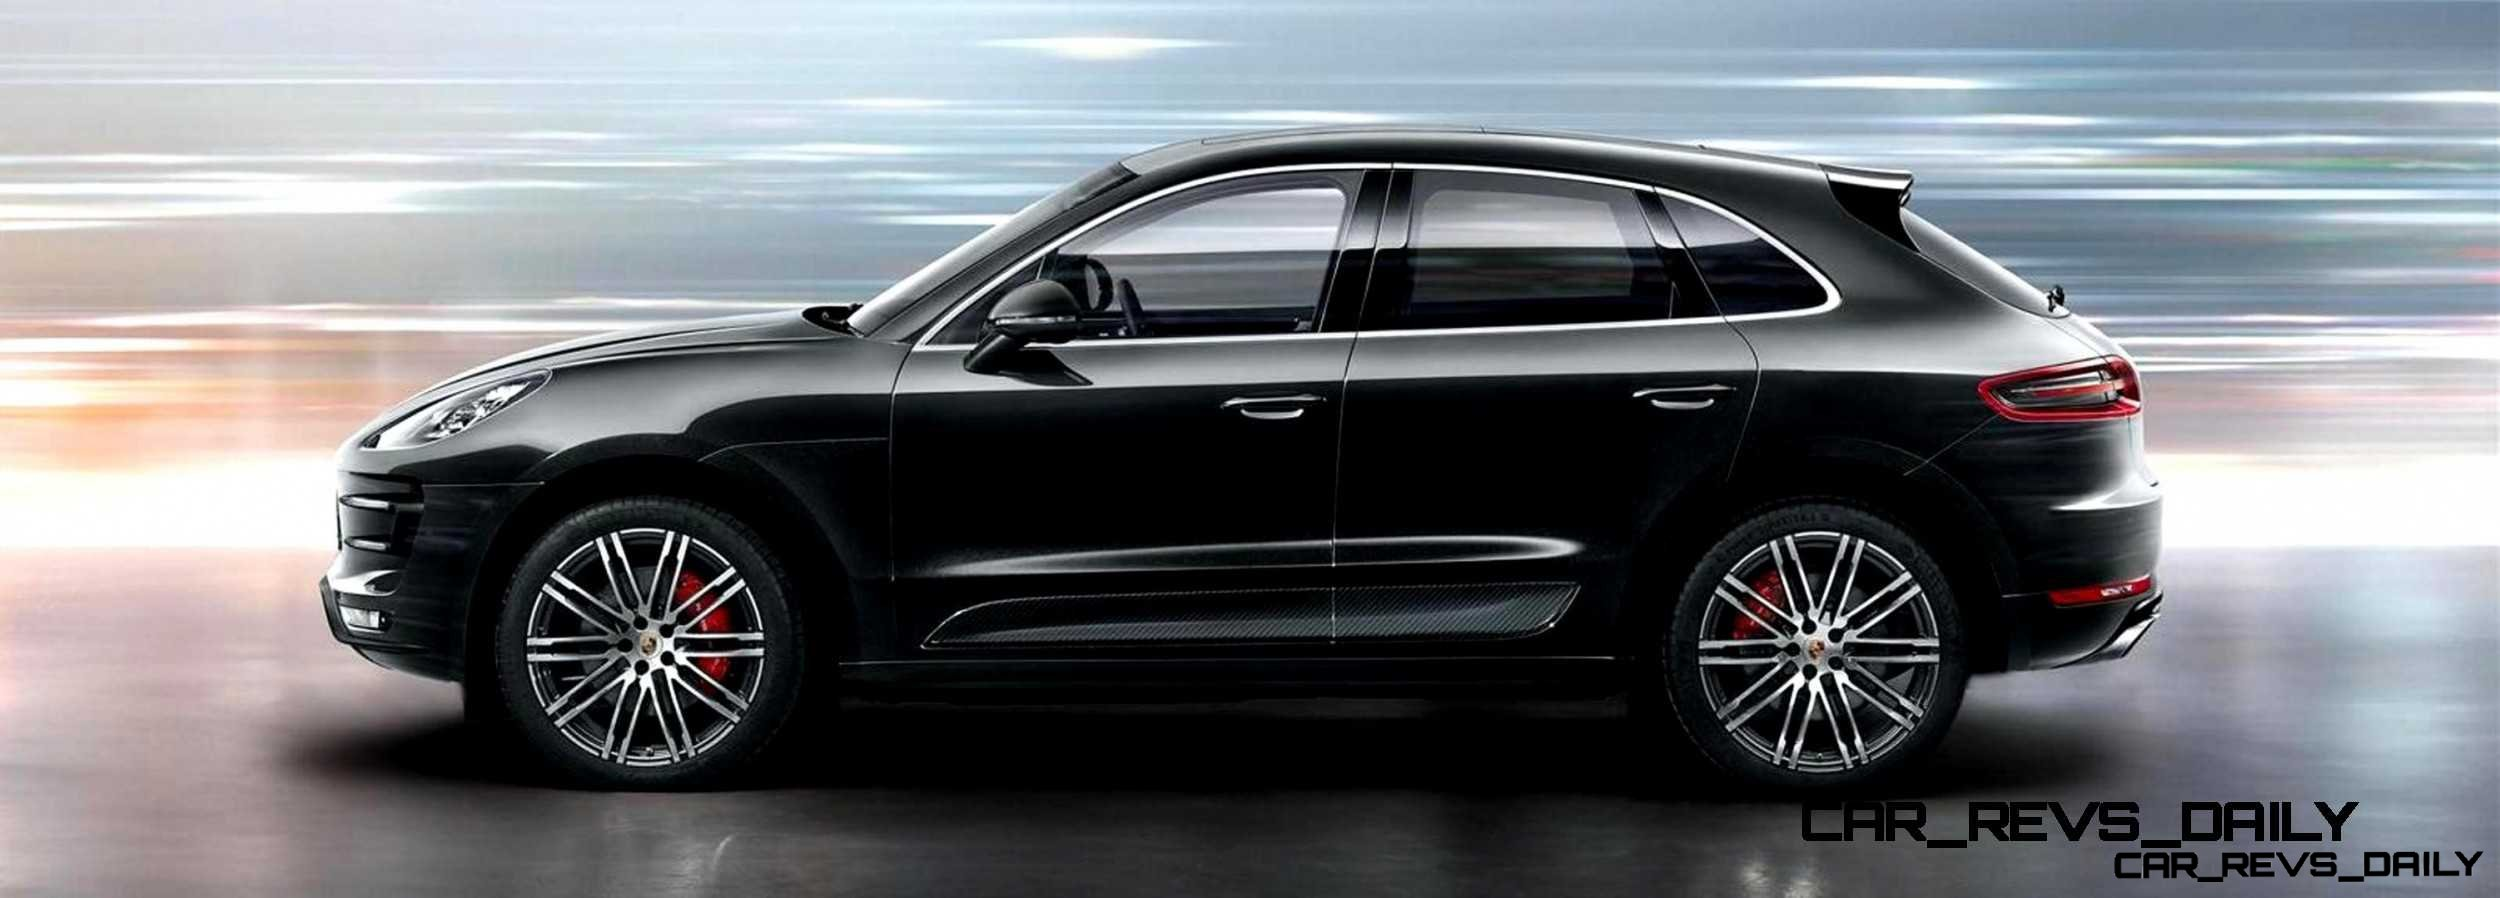 2015 Porsche Macan - Latest Images - CarRevsDaily.com 54